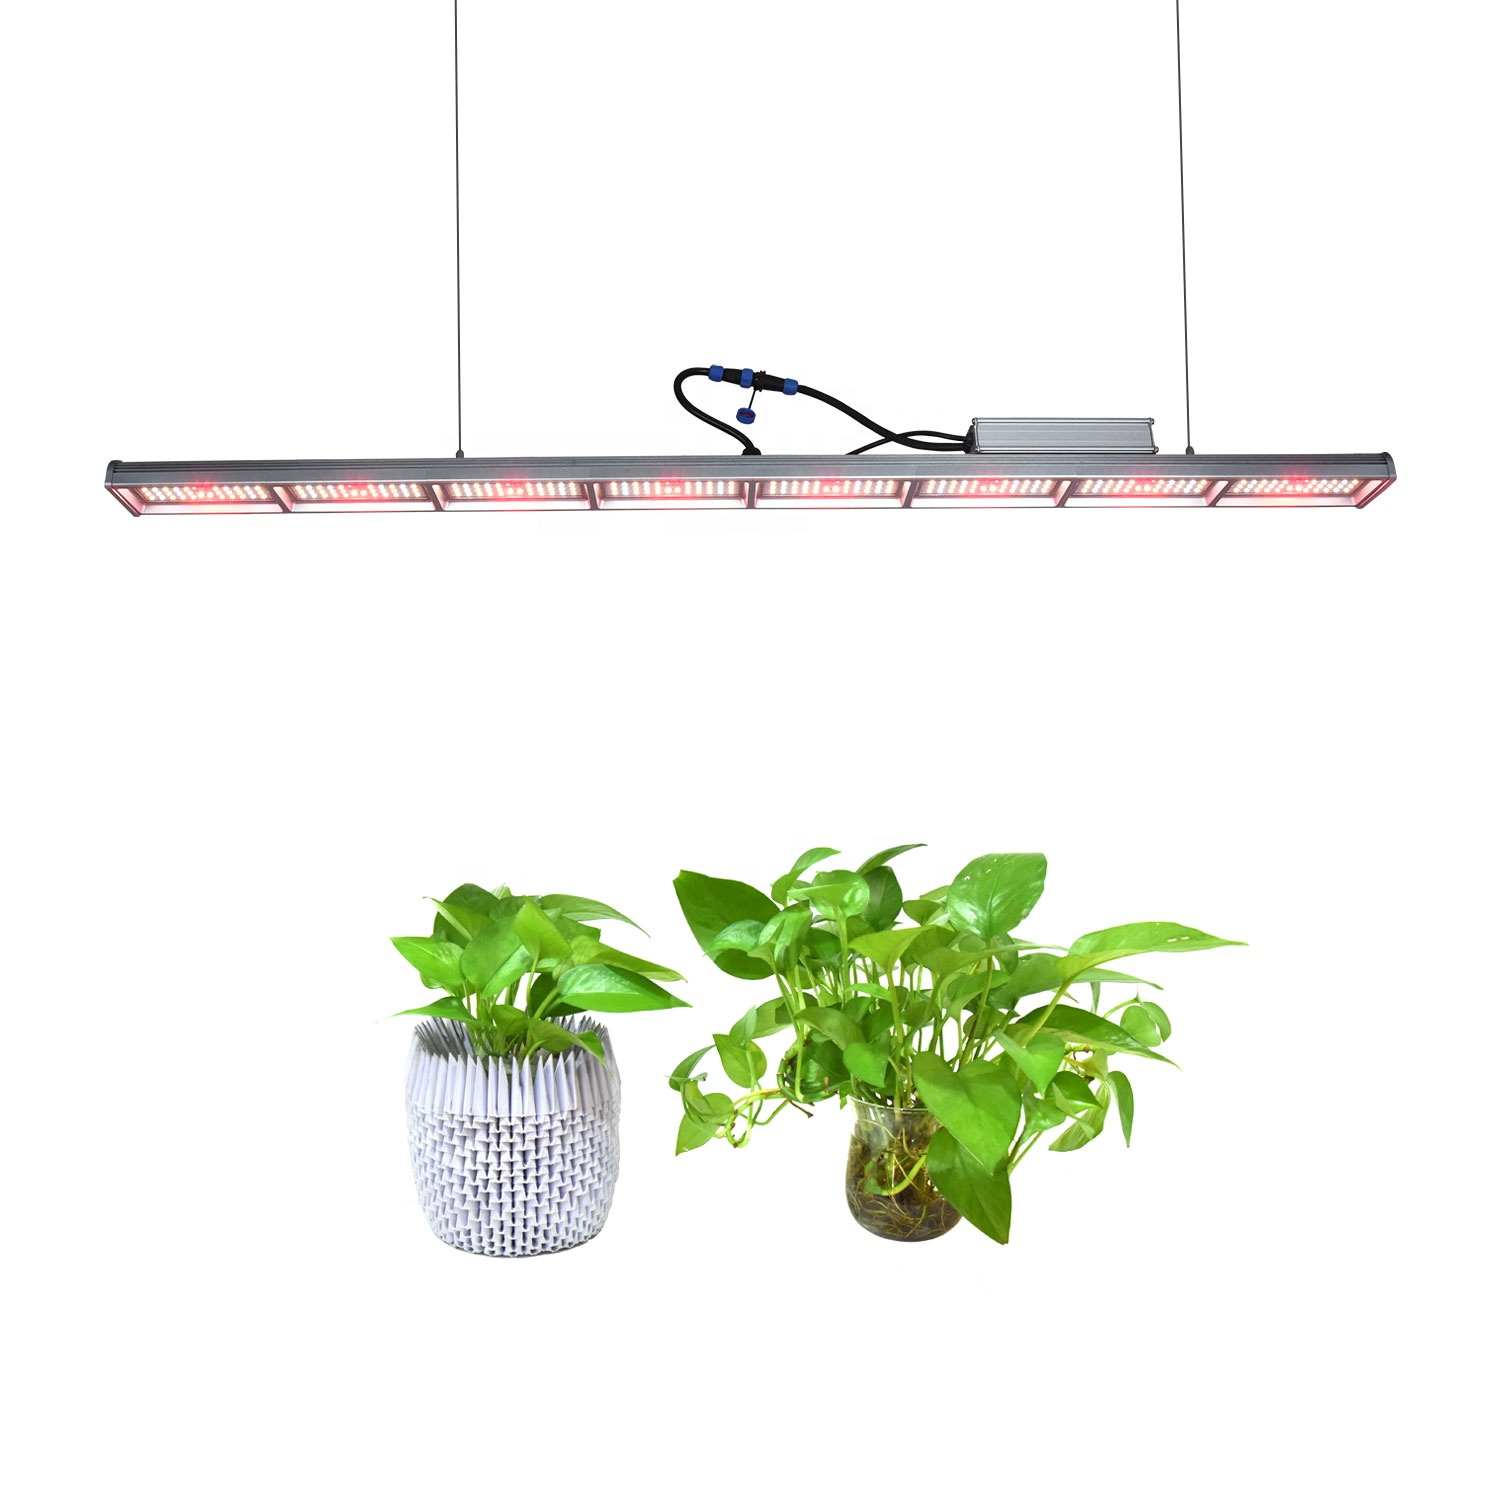 Dimmable Design Full Spectrum Led Grow Lights Strip Bloom Booster Led Grow Lights for Medical Plants